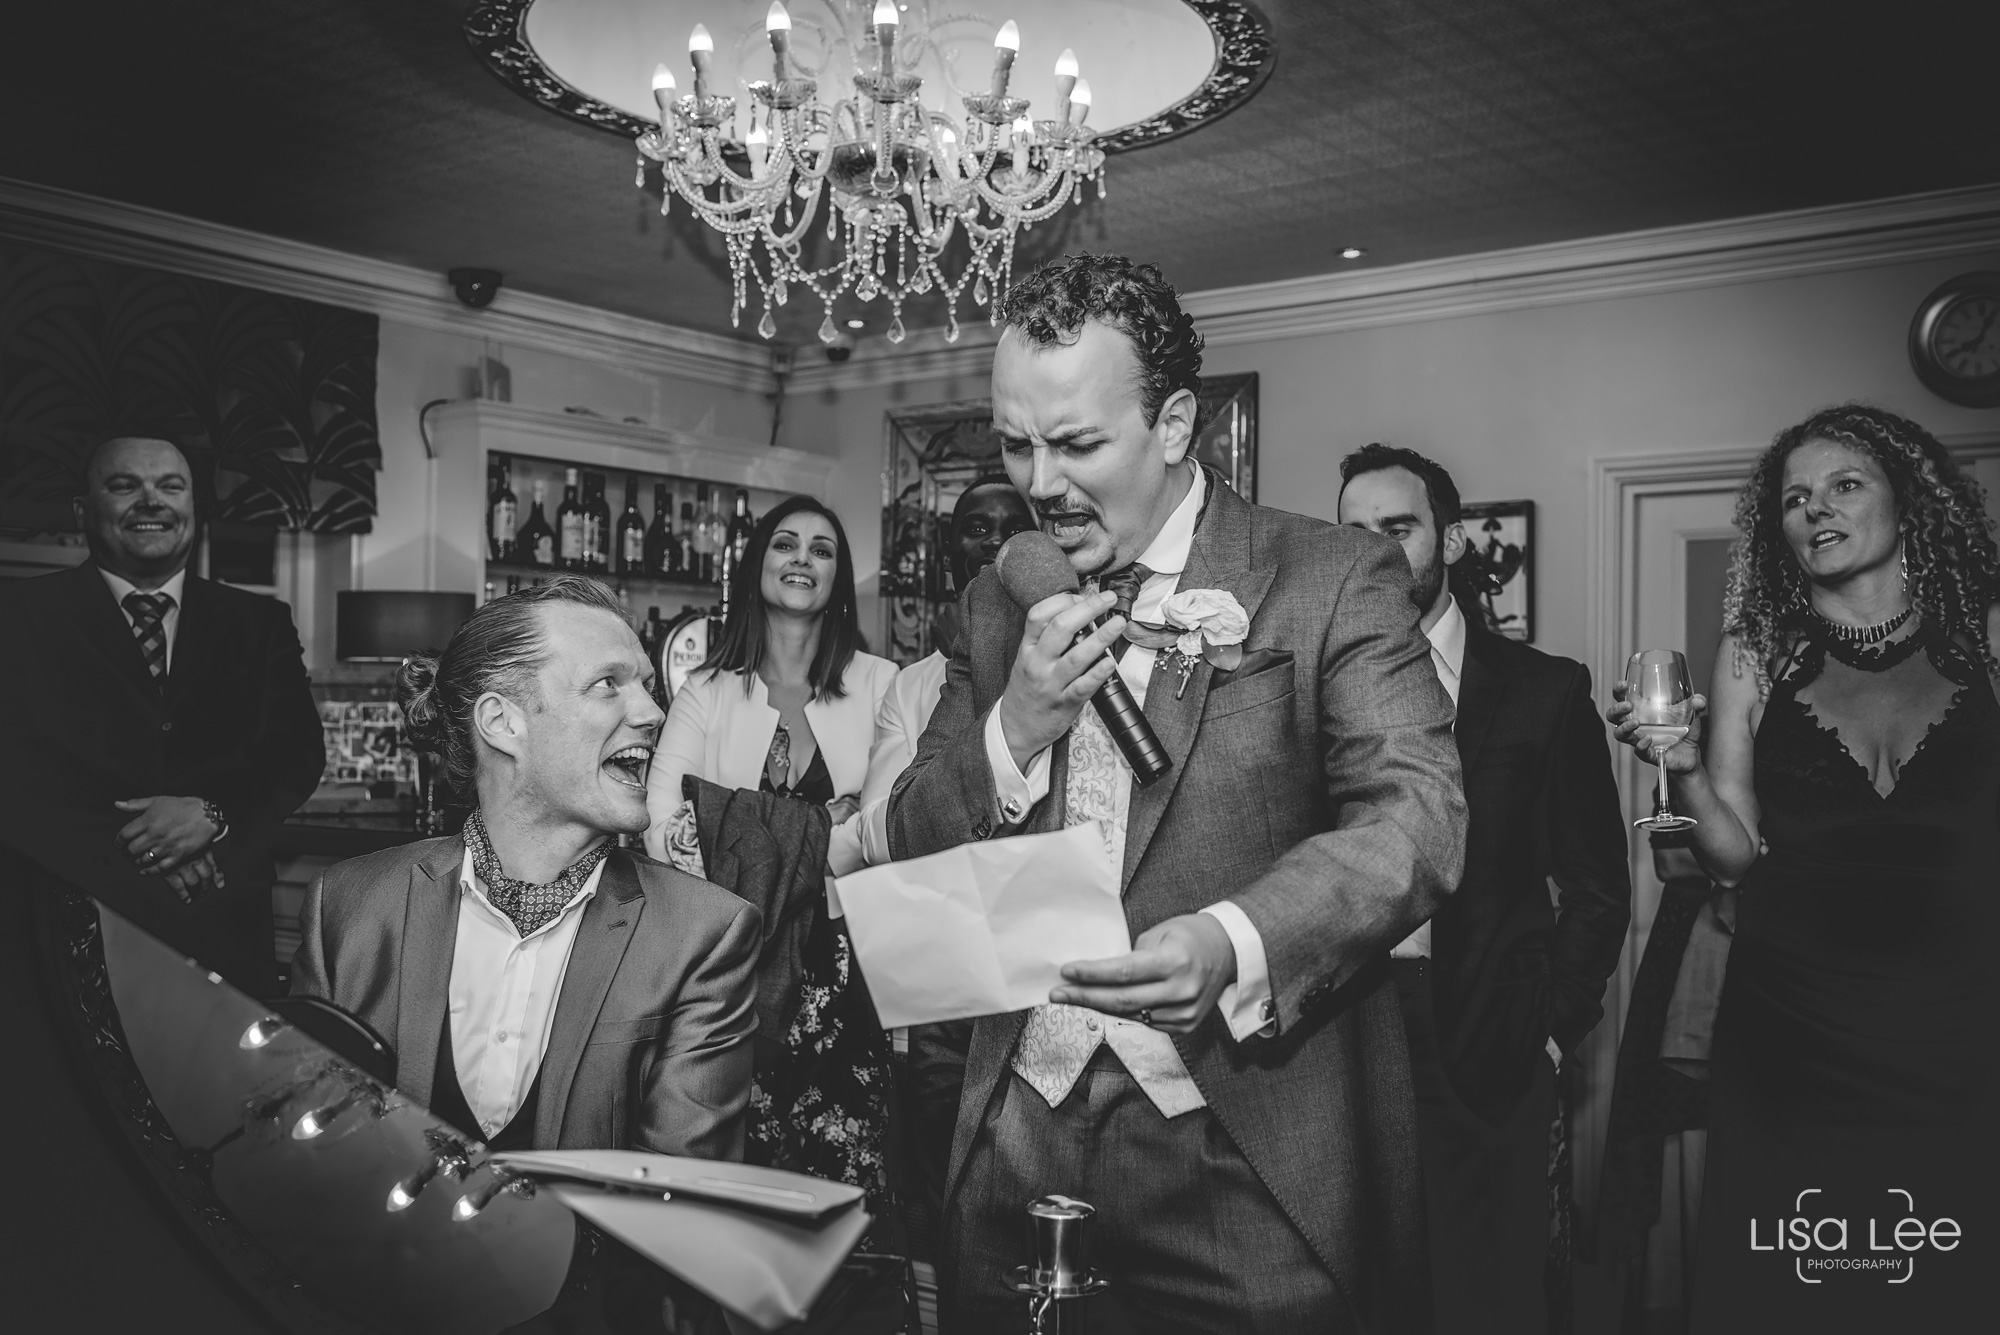 Lord-Bute-Hotel-Lisa-Lee-Documentary-Wedding-Photography-party-19.jpg